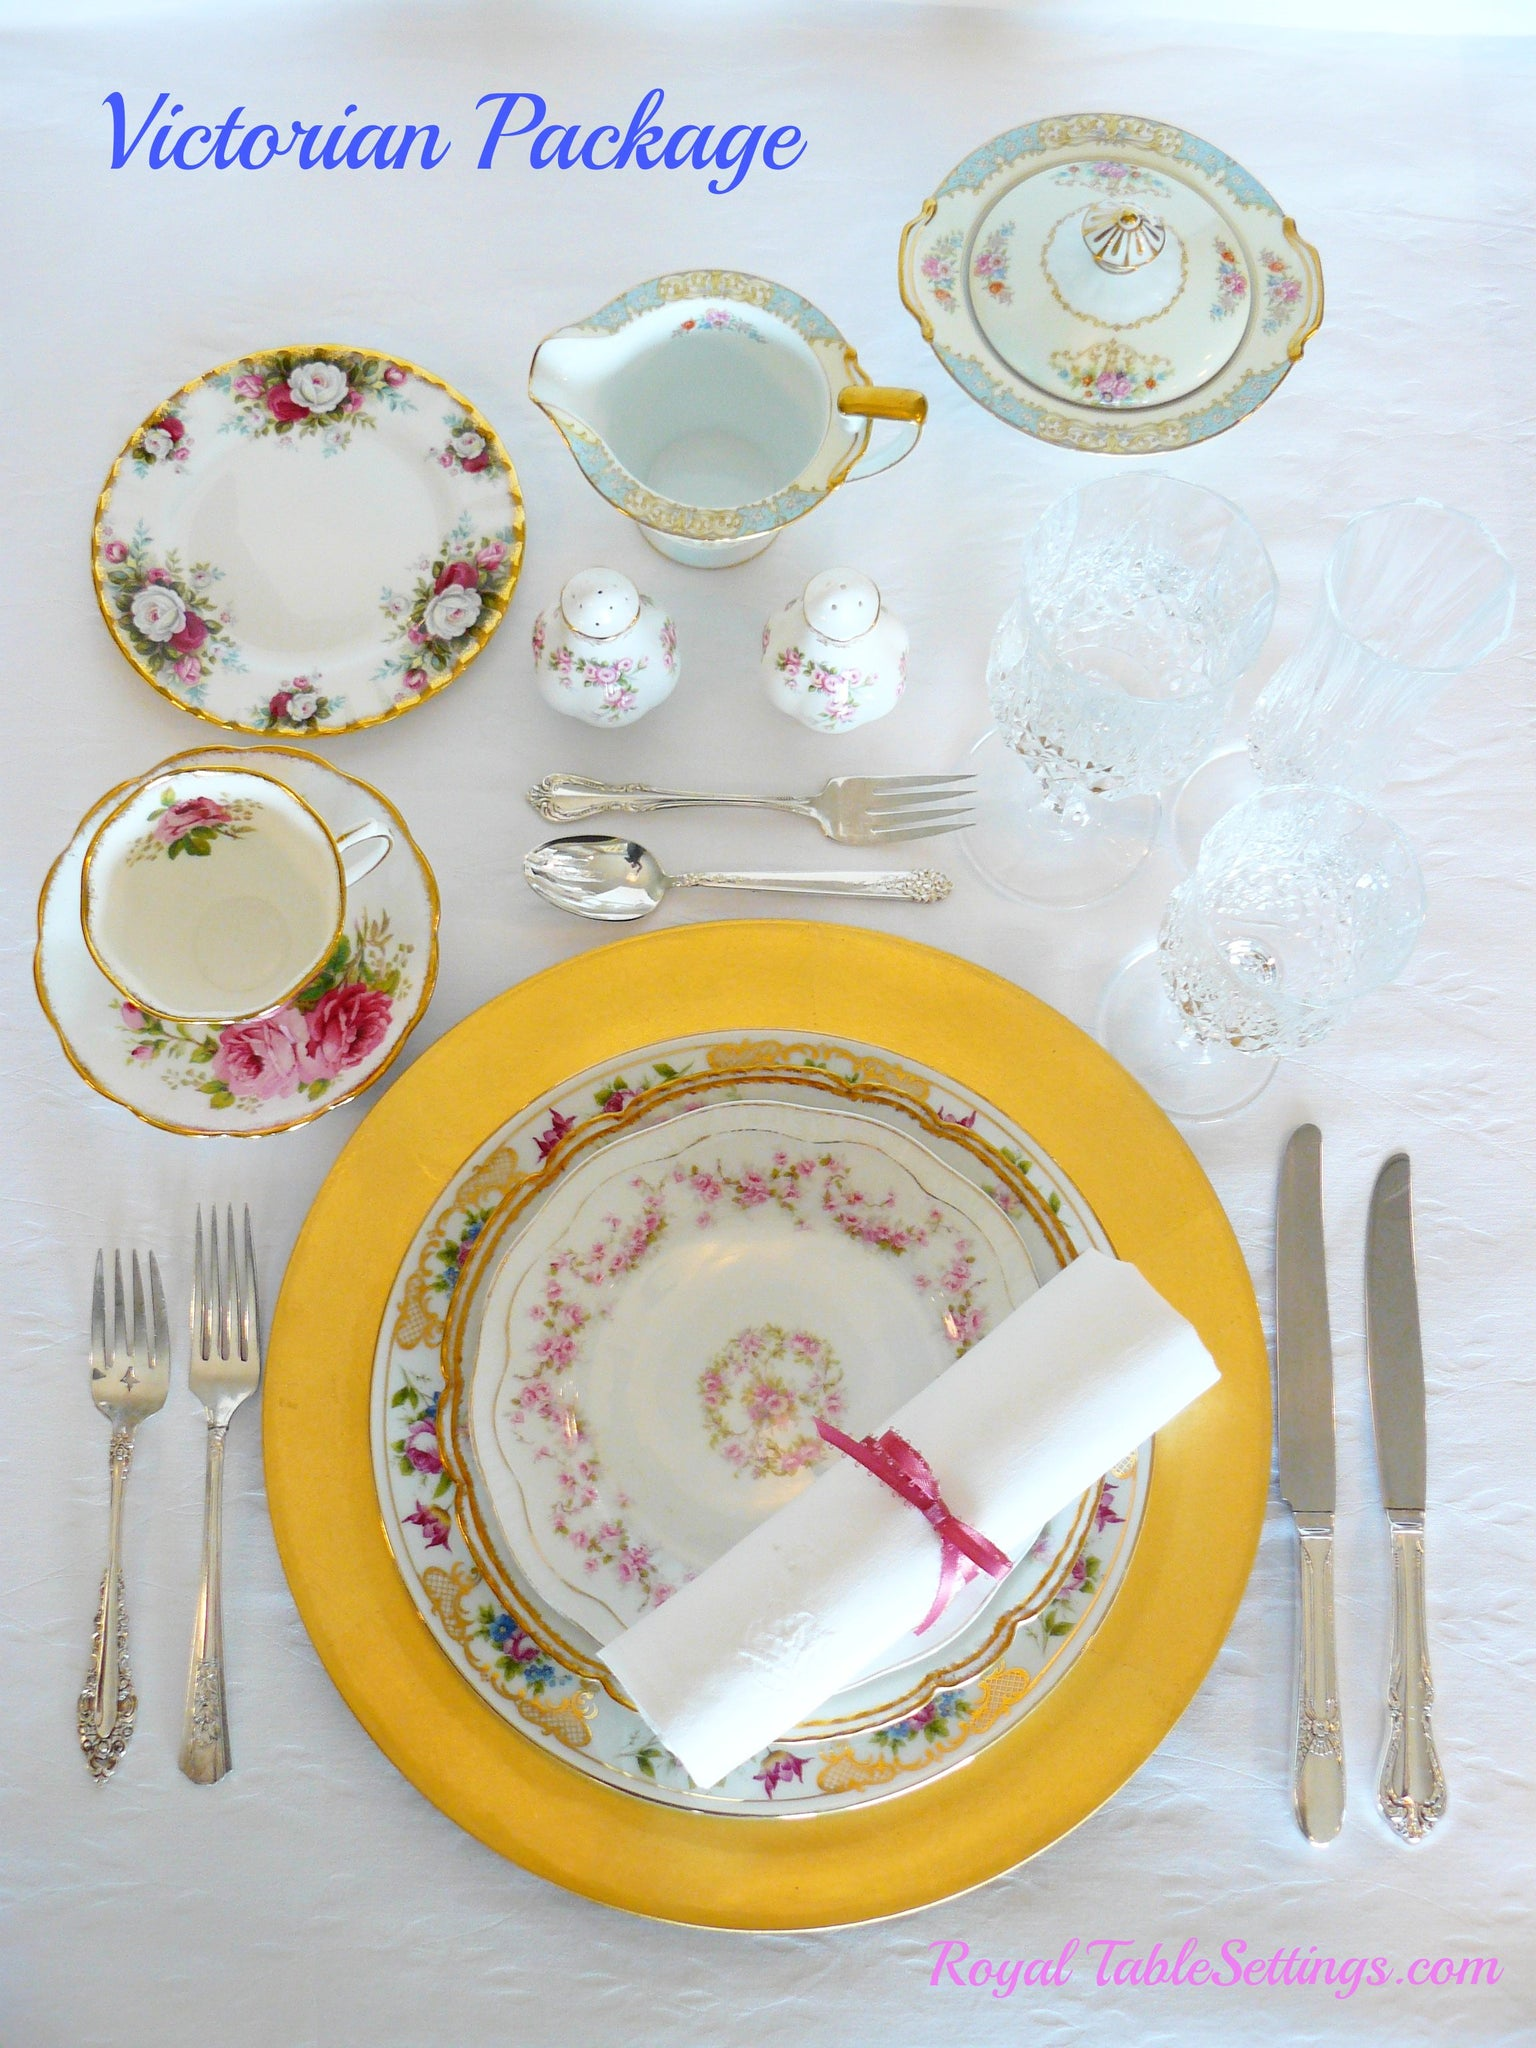 Victorian Package by Royal Table Settings